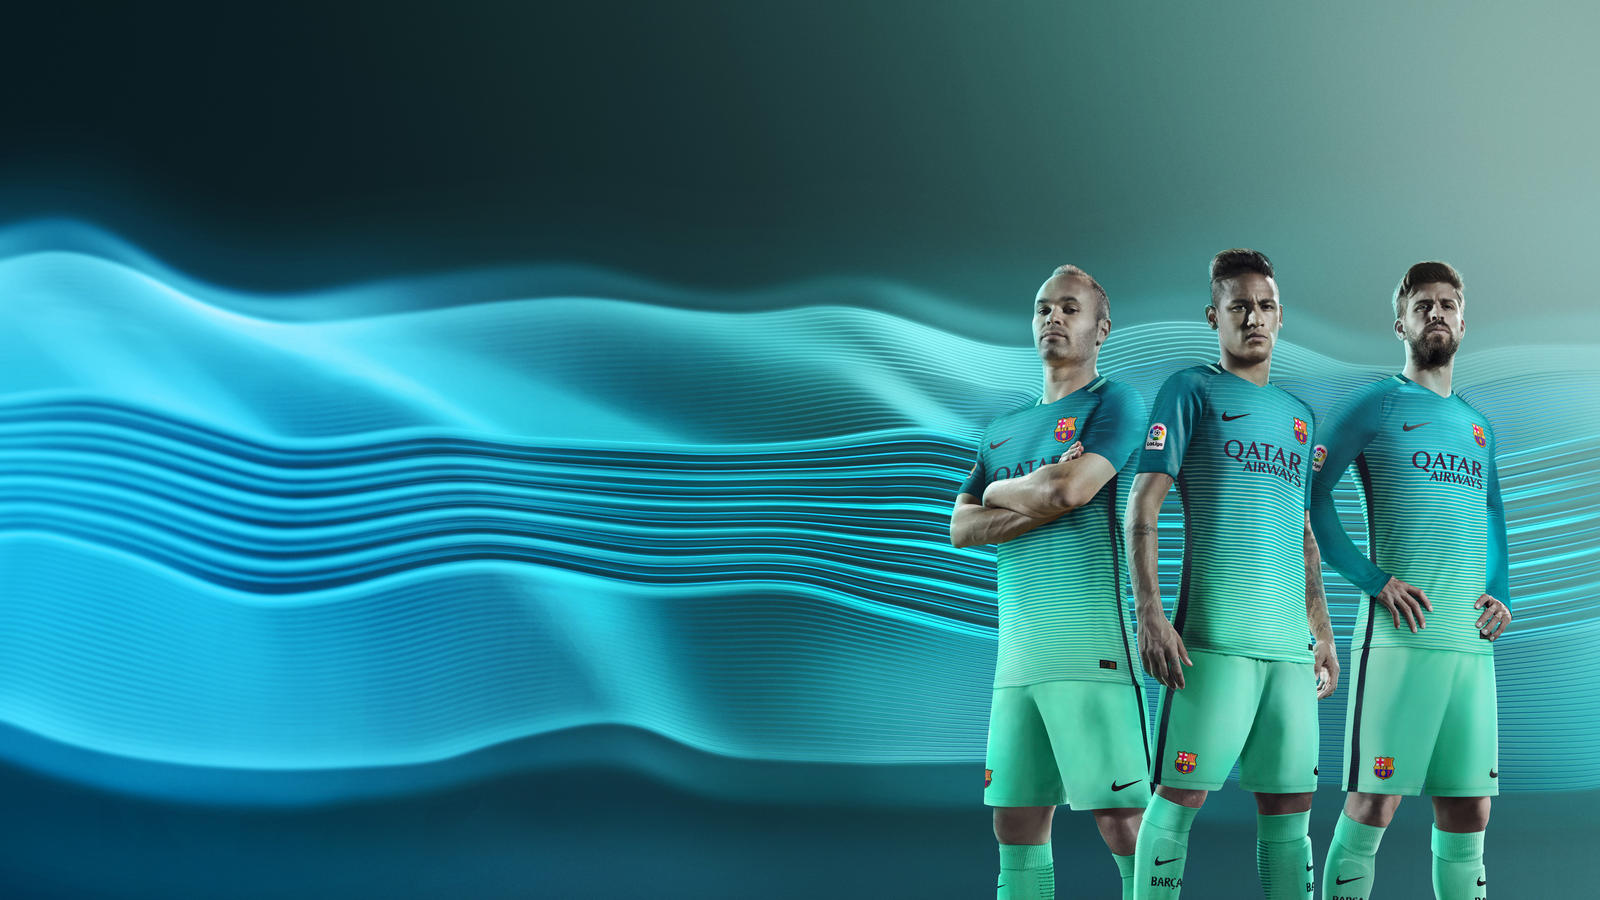 9bfad3786e F.C. Barcelona Third Kit 2016-17 - Nike News